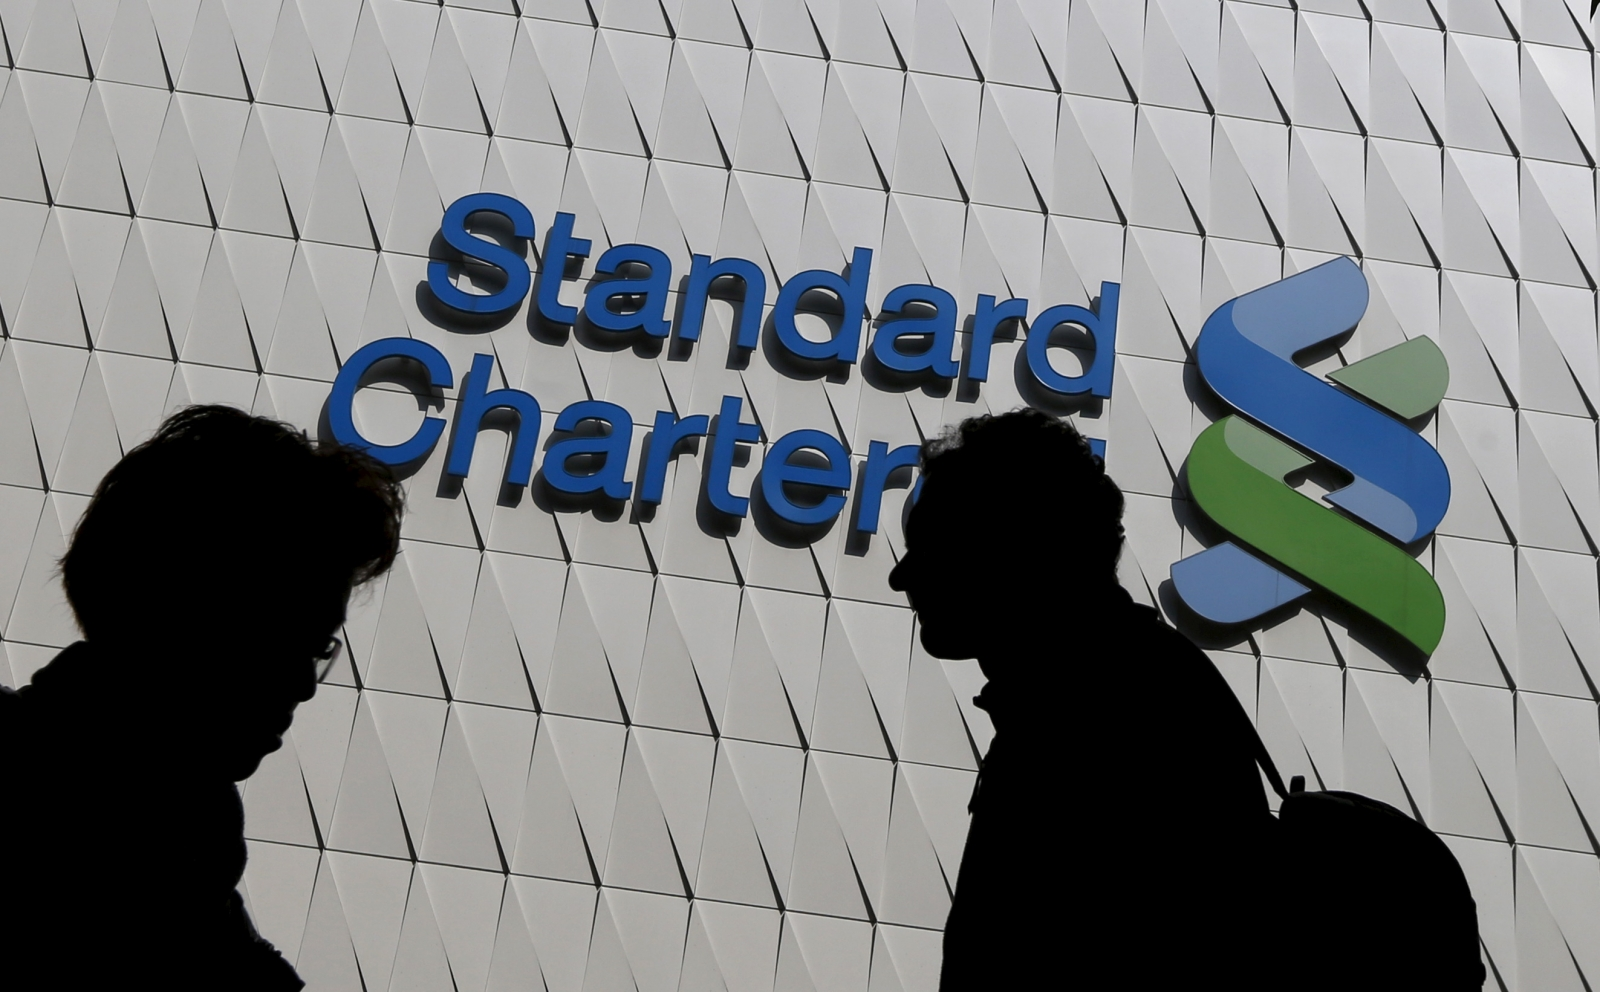 Standard Chartered's Q1 profit doubles to $1 billion as bad loans fall